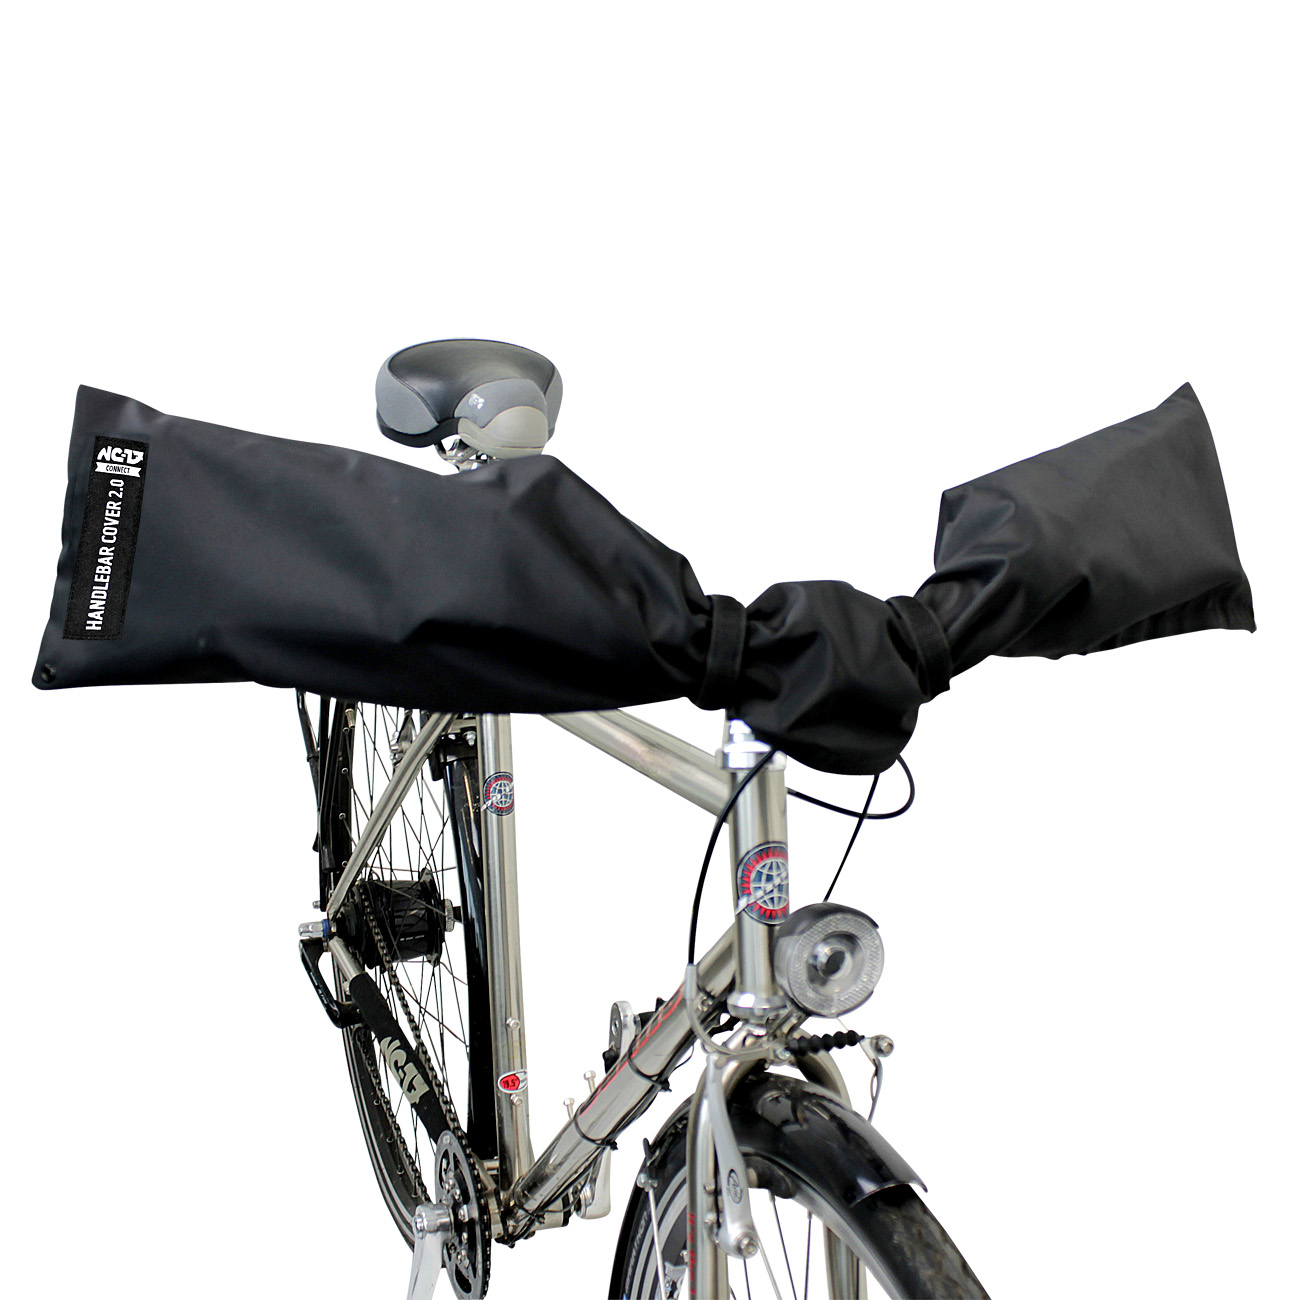 NC-17 Connect Handlebar Cover 2.0<br/>Für Lenker, one size fits all, schwarz<br/>&nbsp;&nbsp;